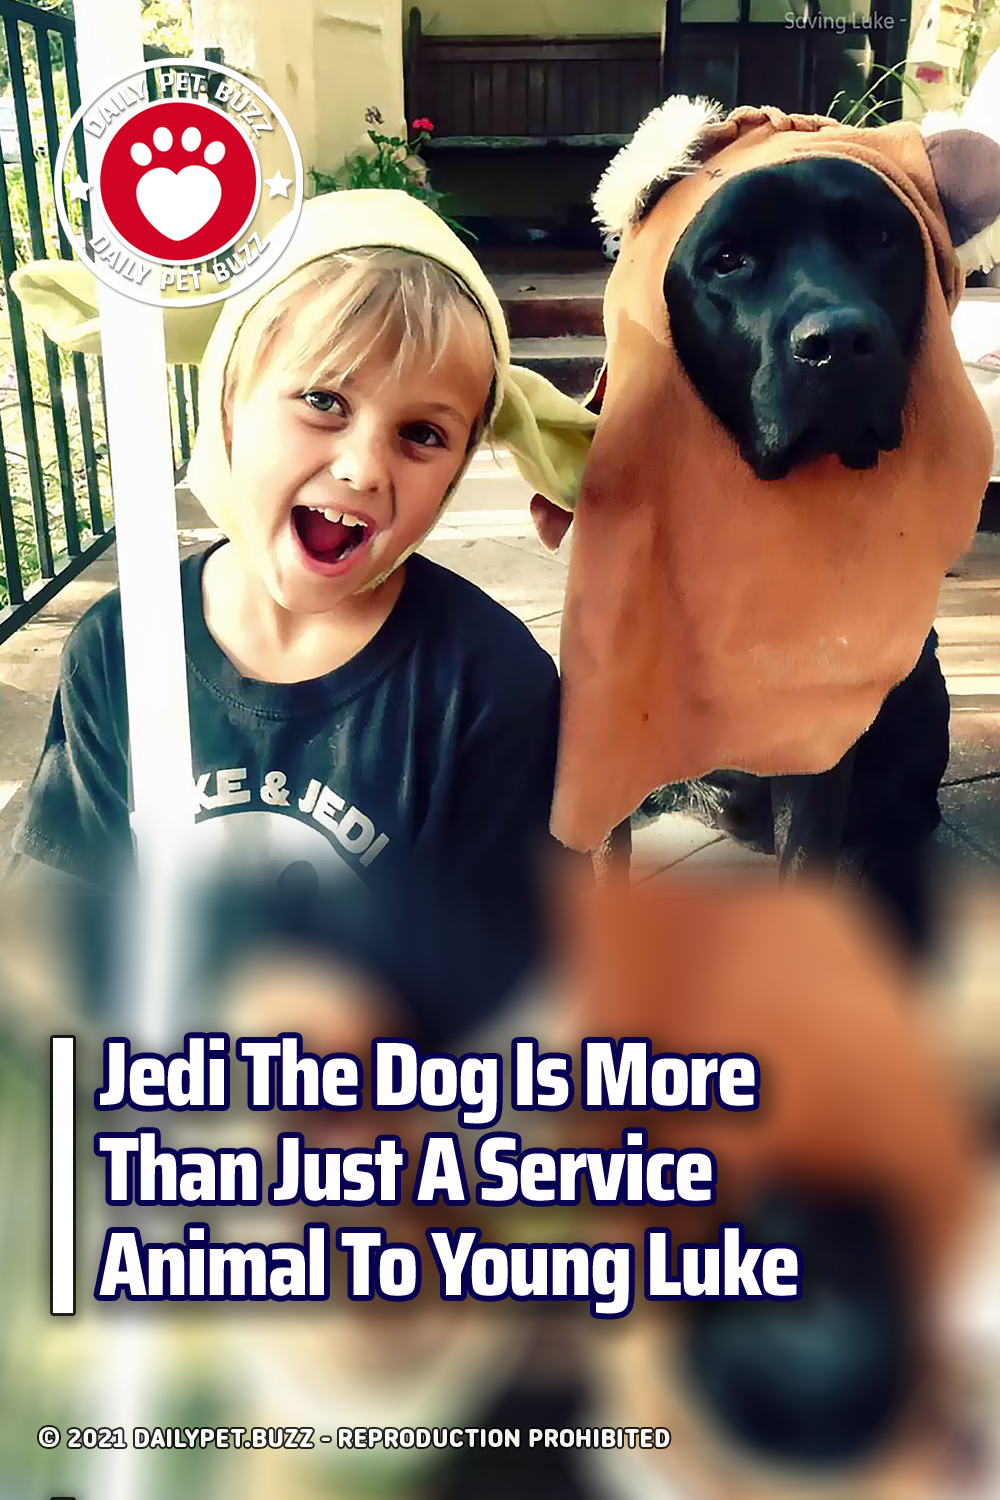 Jedi The Dog Is More Than Just A Service Animal To Young Luke